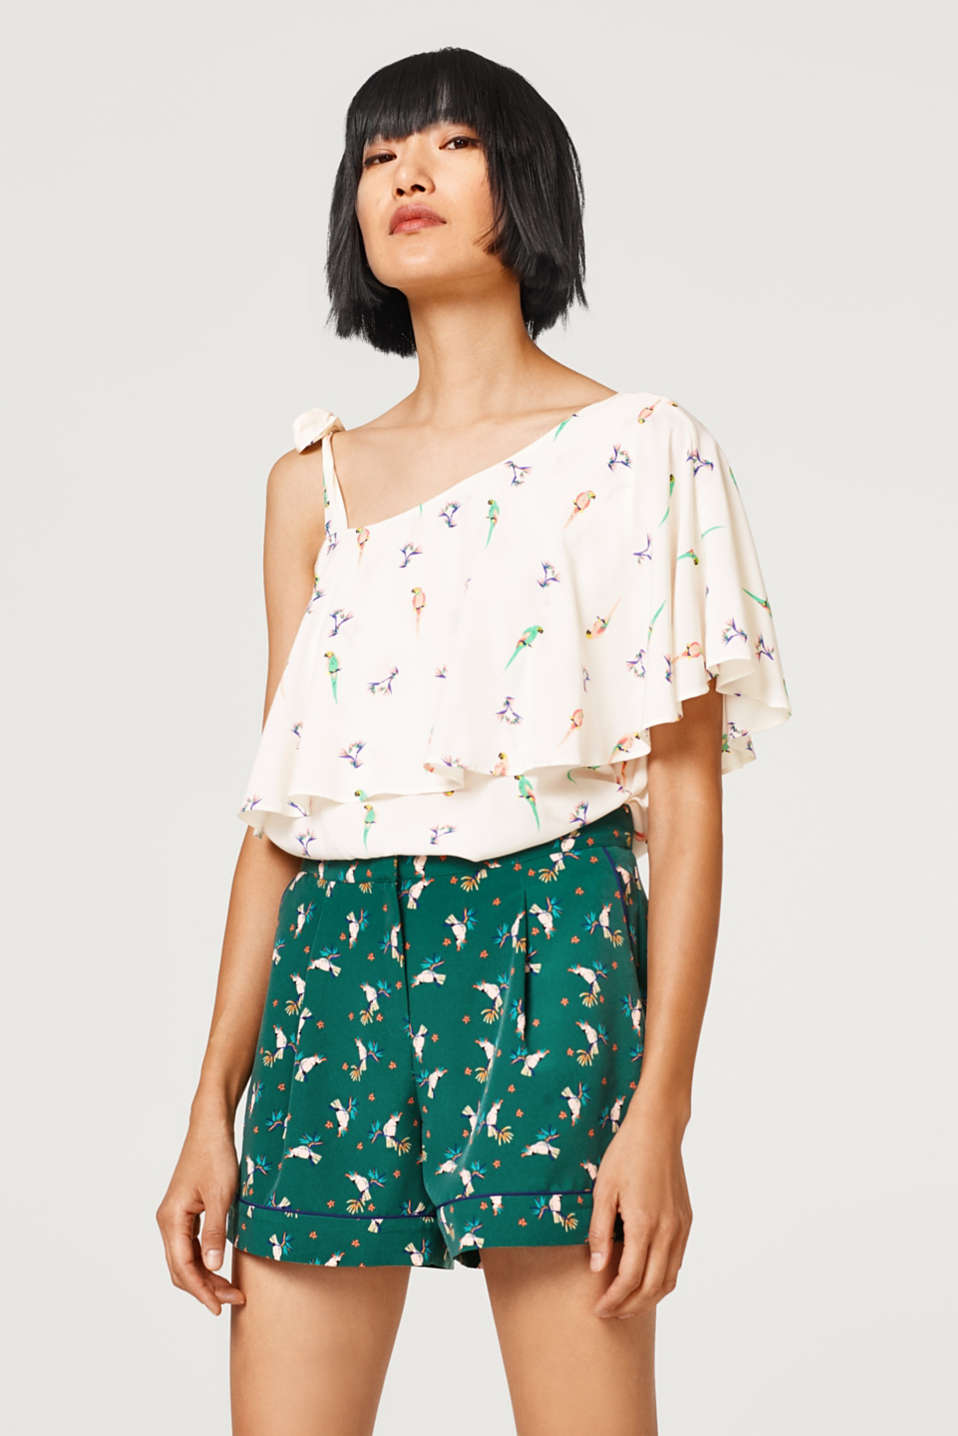 Asymmetric blouse top with a parrot print